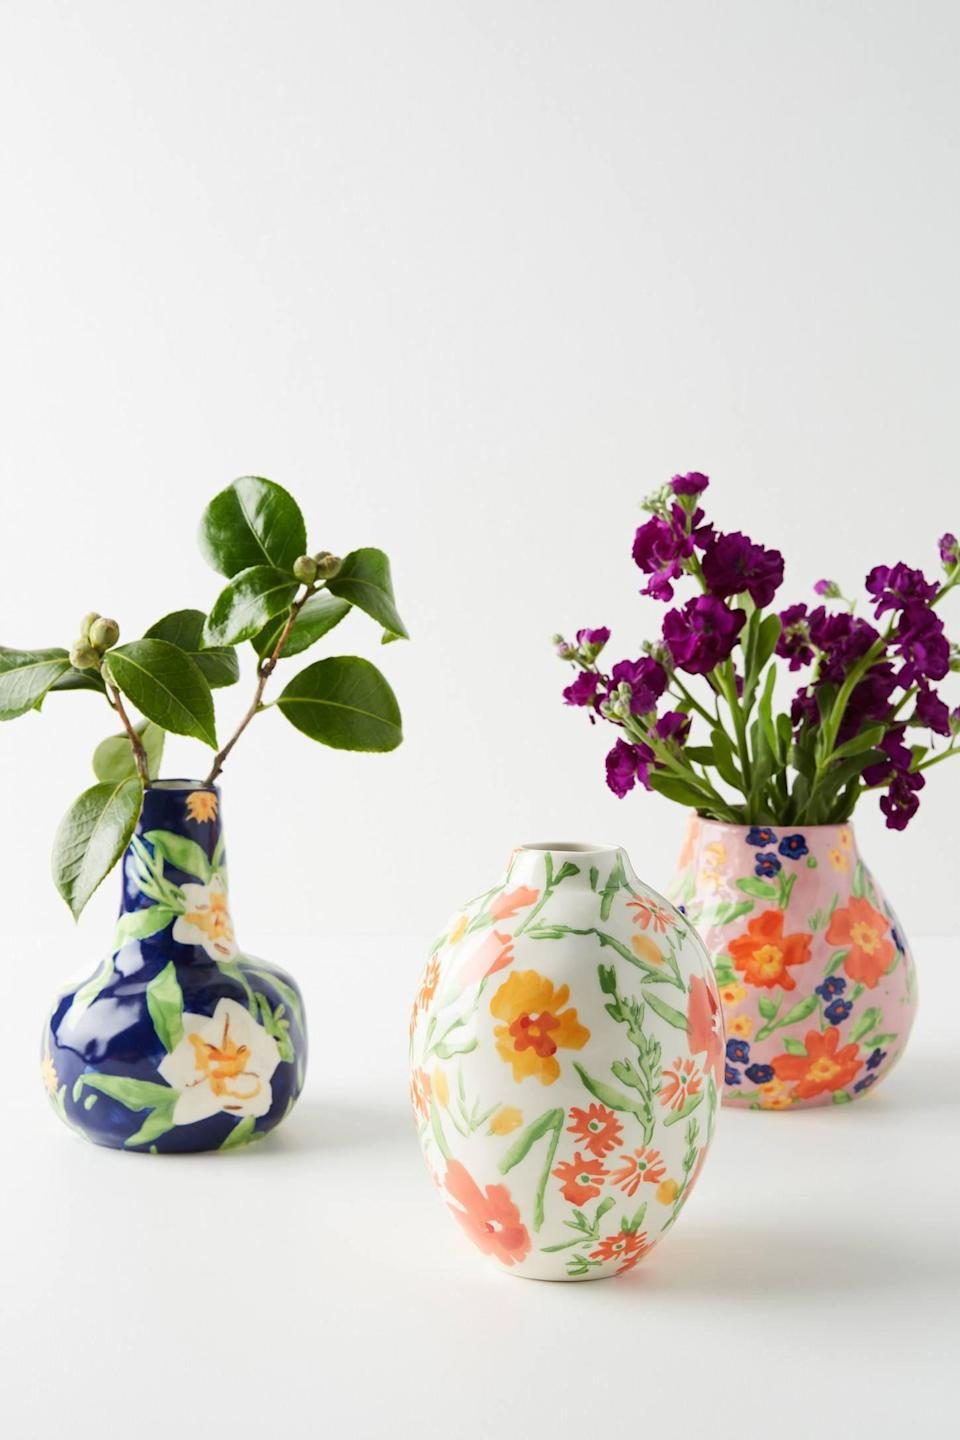 """<p><strong>Leah Goren Anthropologie</strong></p><p>anthropologie.com</p><p><strong>$23.00</strong></p><p><a href=""""https://go.redirectingat.com?id=74968X1596630&url=https%3A%2F%2Fwww.anthropologie.com%2Fshop%2Fleah-goren-marcella-vase&sref=https%3A%2F%2Fwww.menshealth.com%2Ftechnology-gear%2Fg32270252%2Fcheap-mothers-day-gifts%2F"""" rel=""""nofollow noopener"""" target=""""_blank"""" data-ylk=""""slk:BUY IT HERE"""" class=""""link rapid-noclick-resp"""">BUY IT HERE</a></p><p>Each illustrated vase, designed by Leah Goren for Anthropologie, will punch up the decor of any room it's placed in. </p>"""